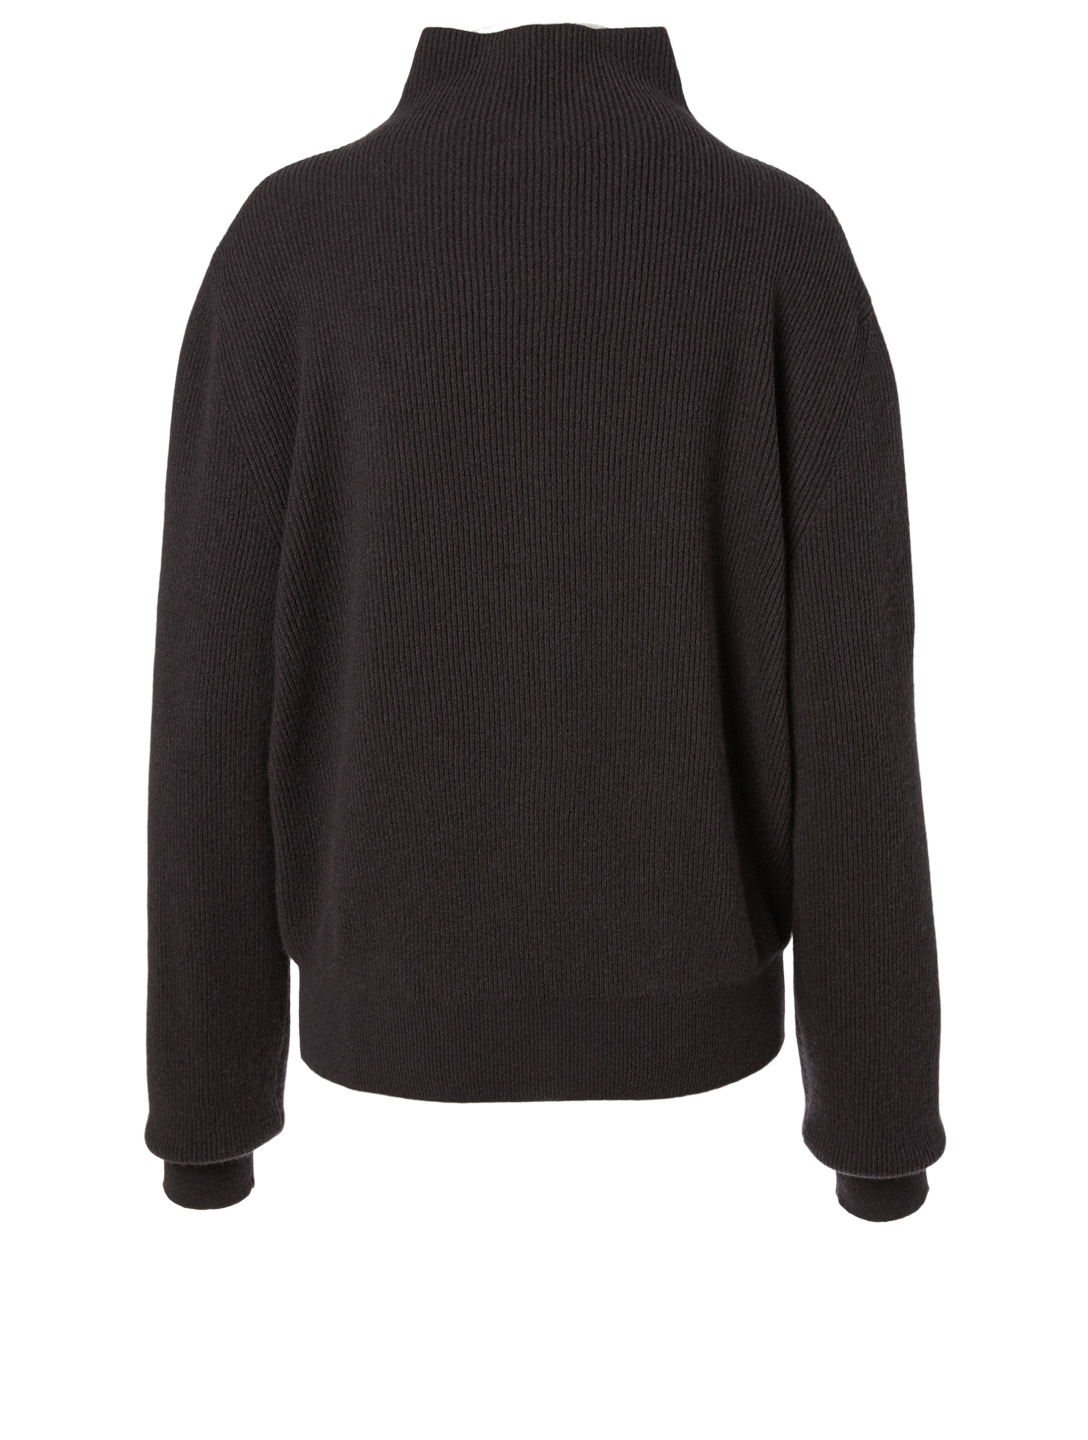 THE ROW Daniel Cashmere Turtleneck Sweater Men's Black